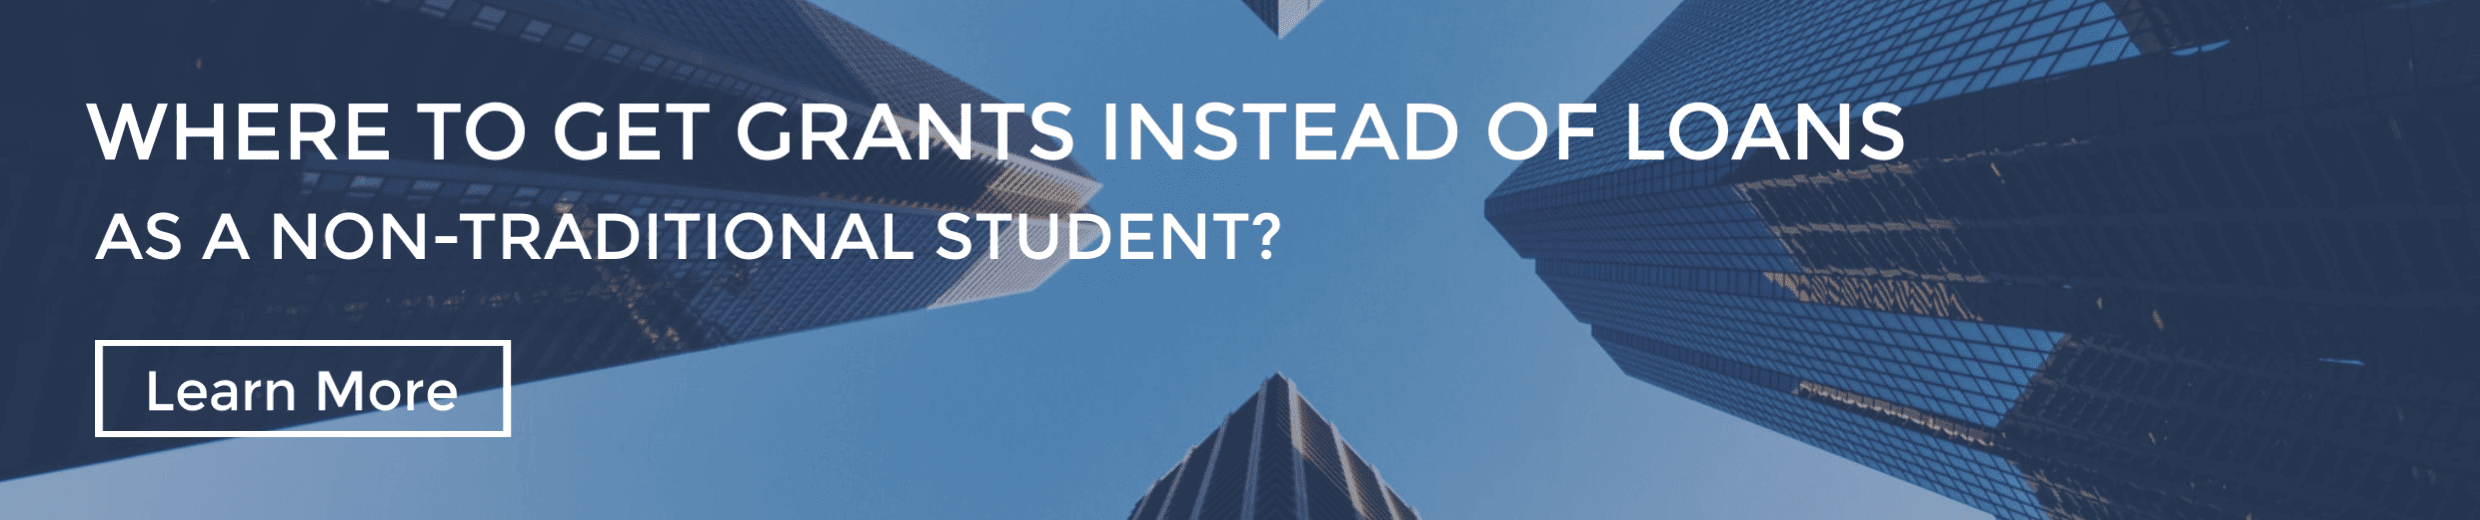 Where to Get Grants Instead of Loans as a Non-Traditional Student